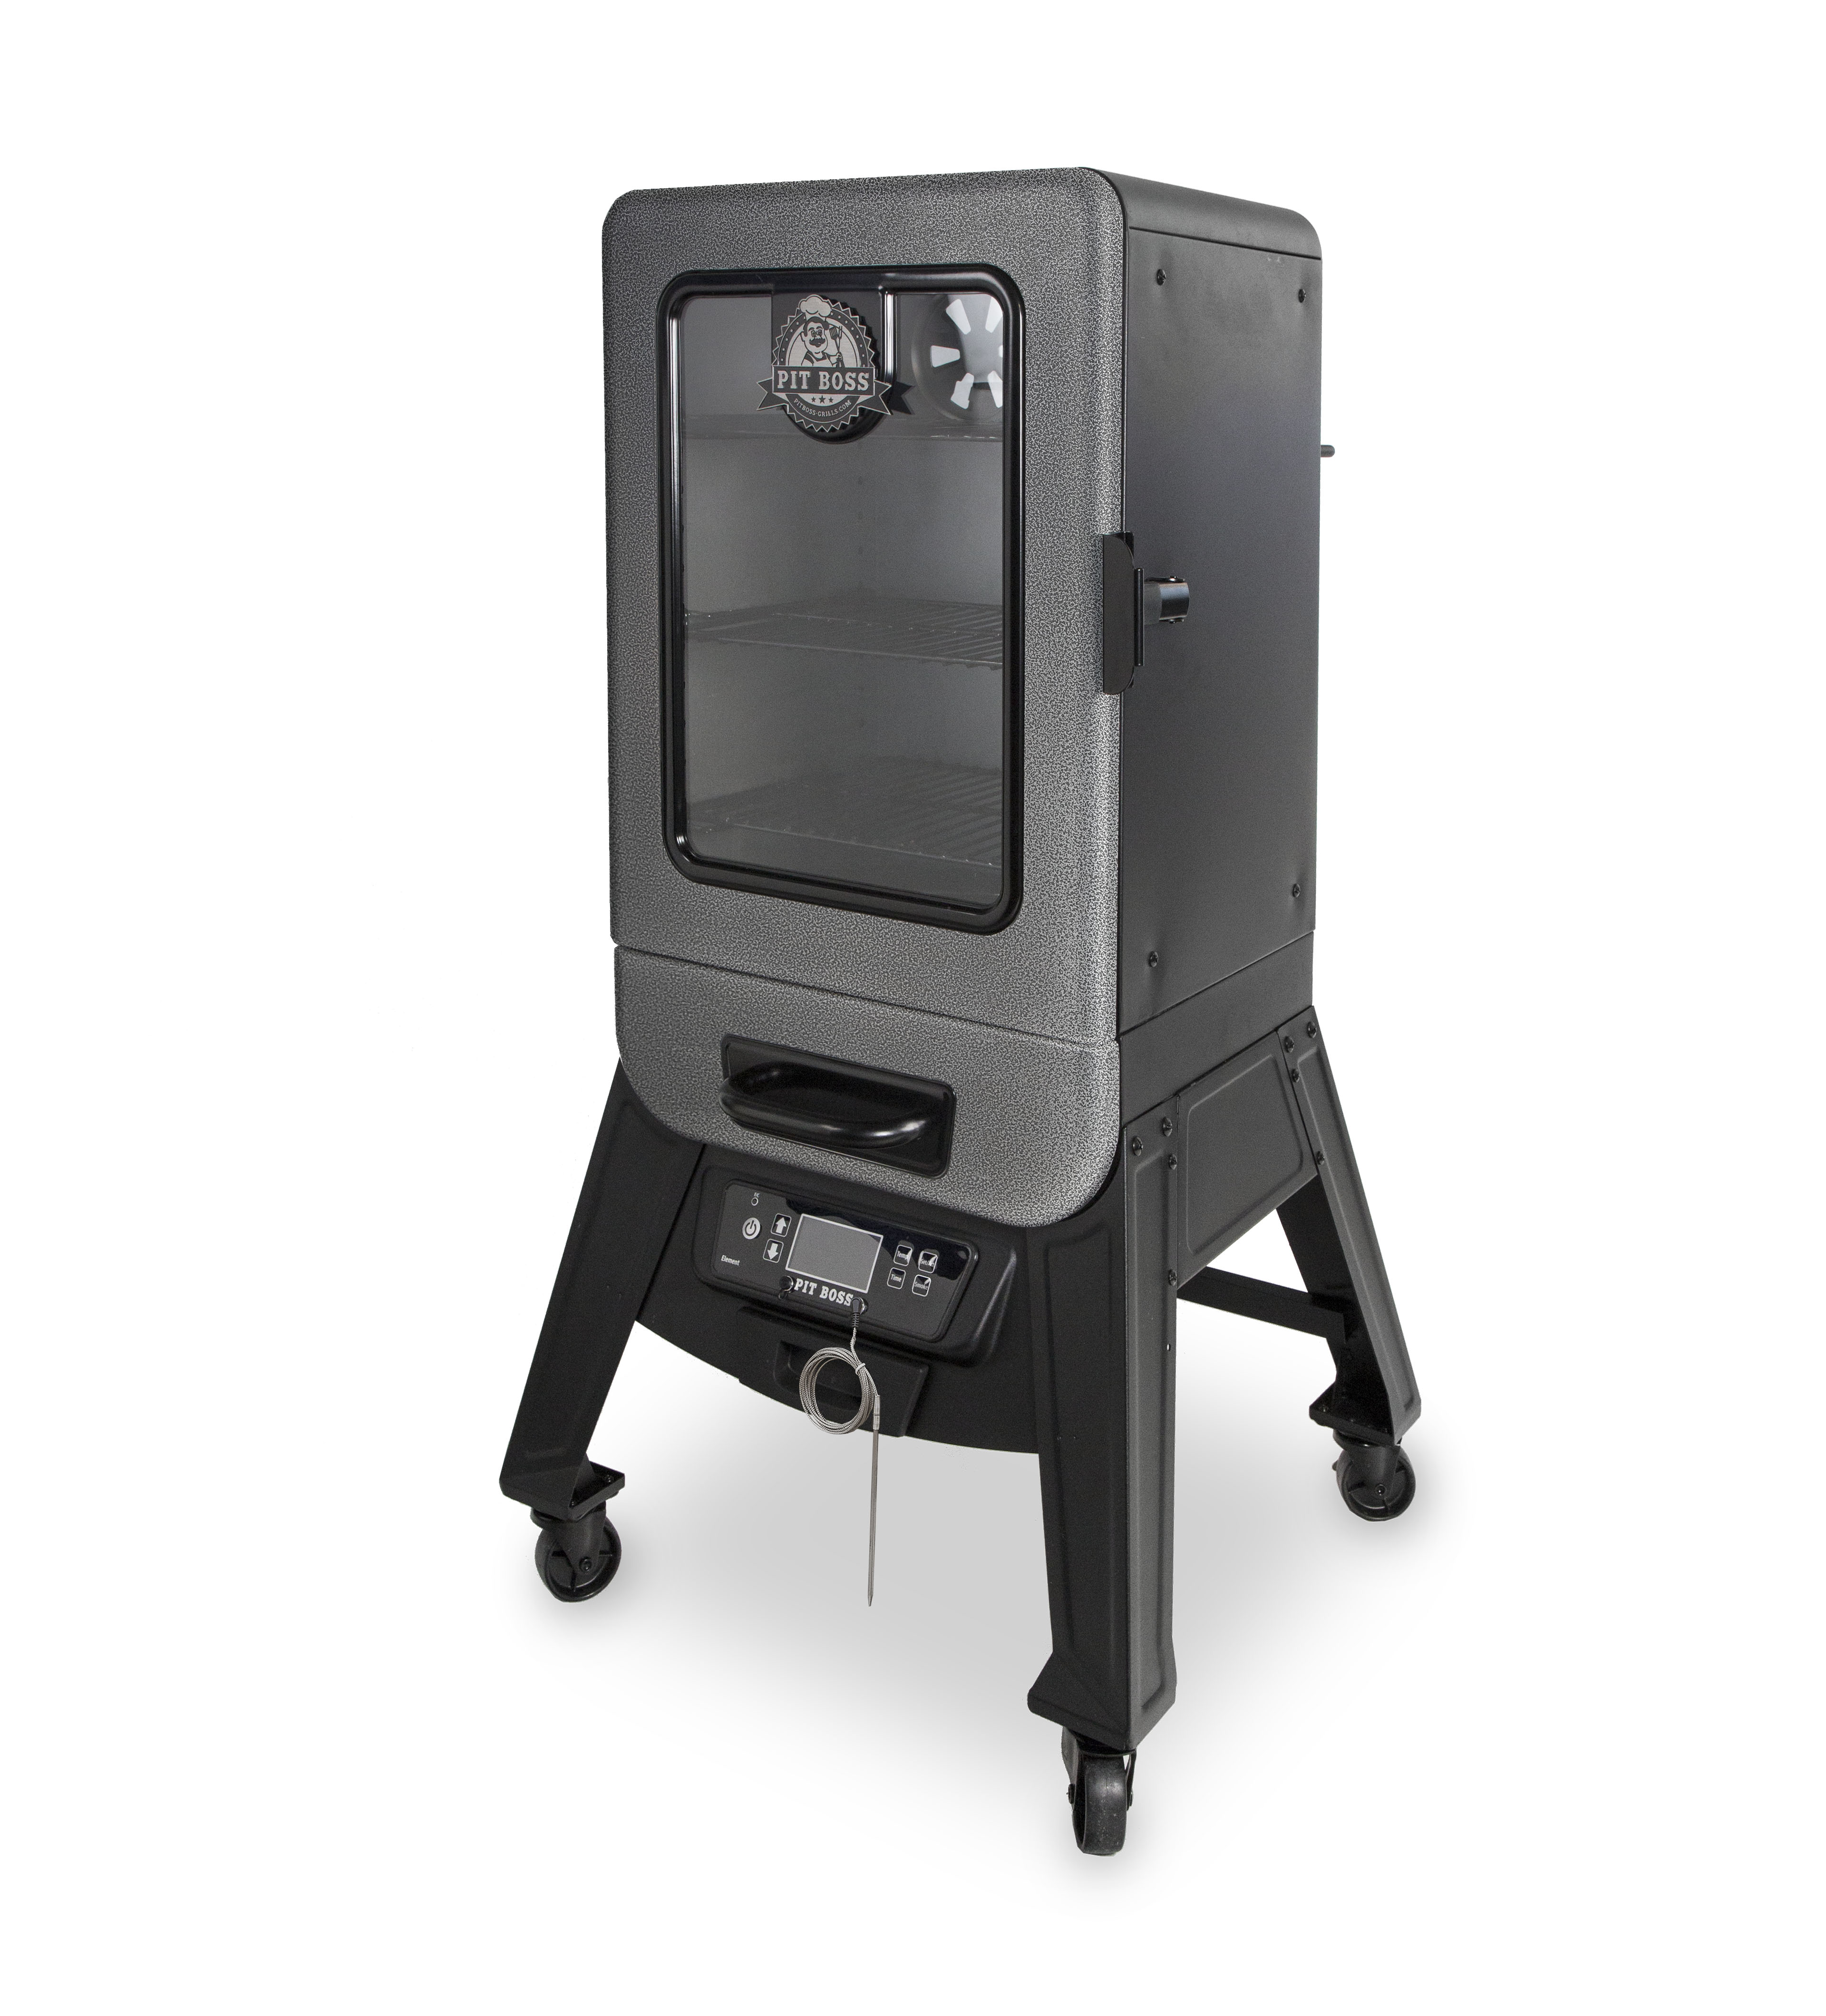 Pit Boss Hammer Tone 2-Series Digital Electric Vertical Smoker